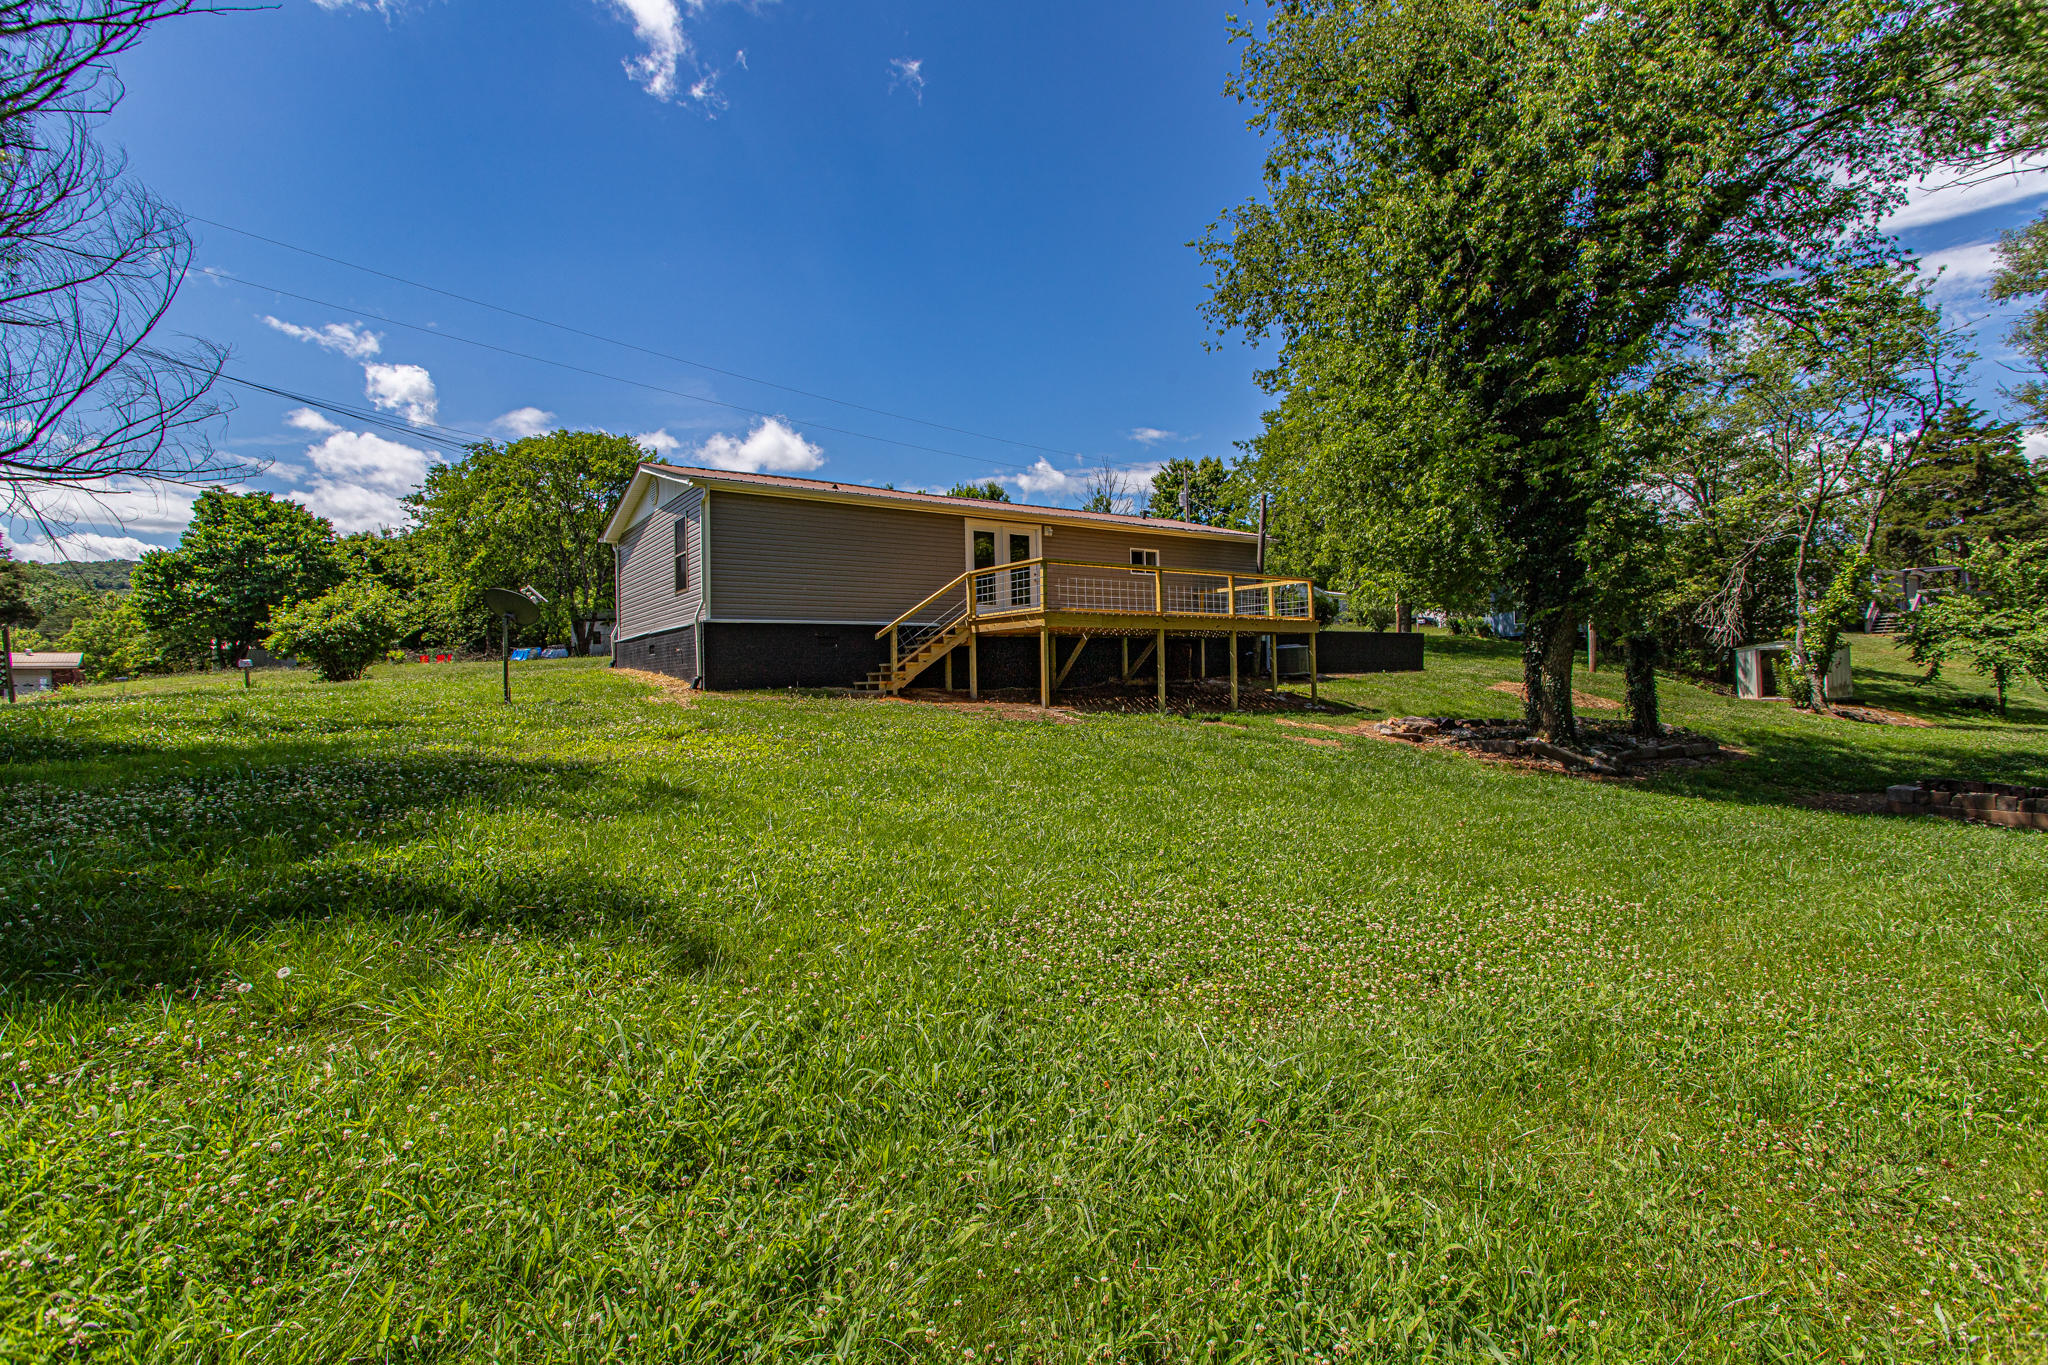 425 Brookside Lane, Kodak, Tennessee 37764, 3 Bedrooms Bedrooms, ,2 BathroomsBathrooms,Single Family,For Sale,Brookside,1119902